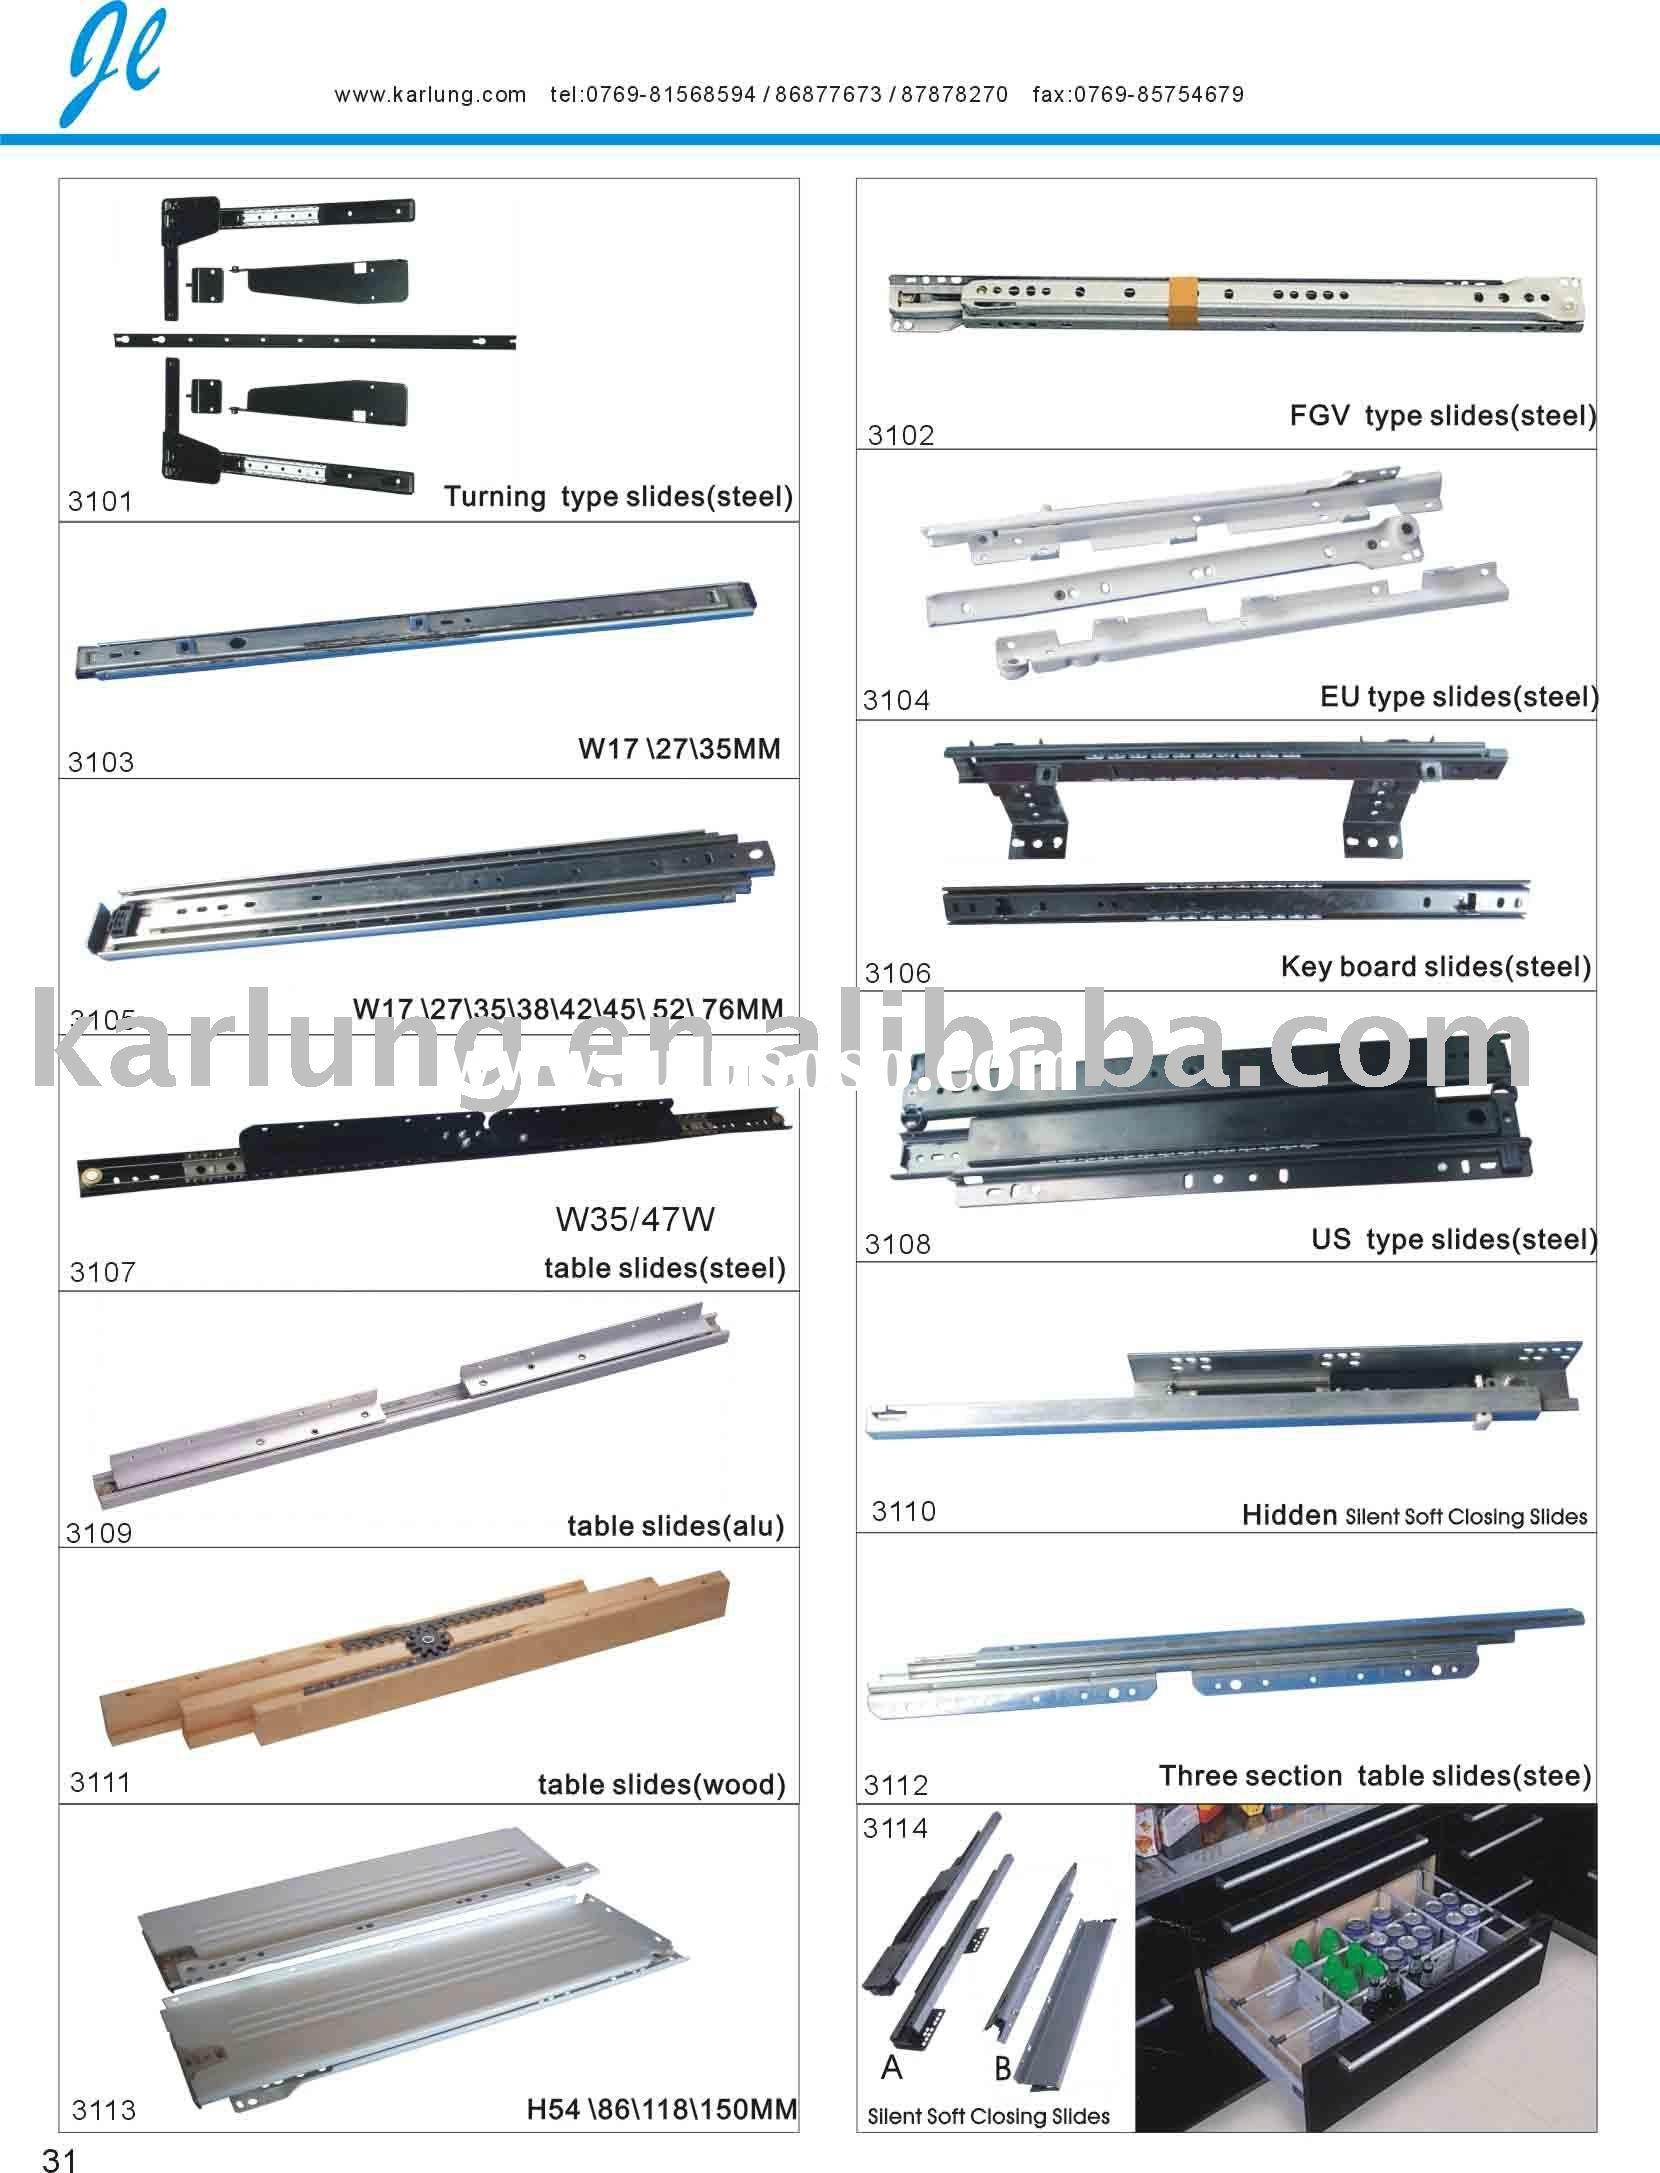 ball bearing slide,Sliding Shelf,telescopic slide,telescopic channel,drawer runner,ball bearing tele